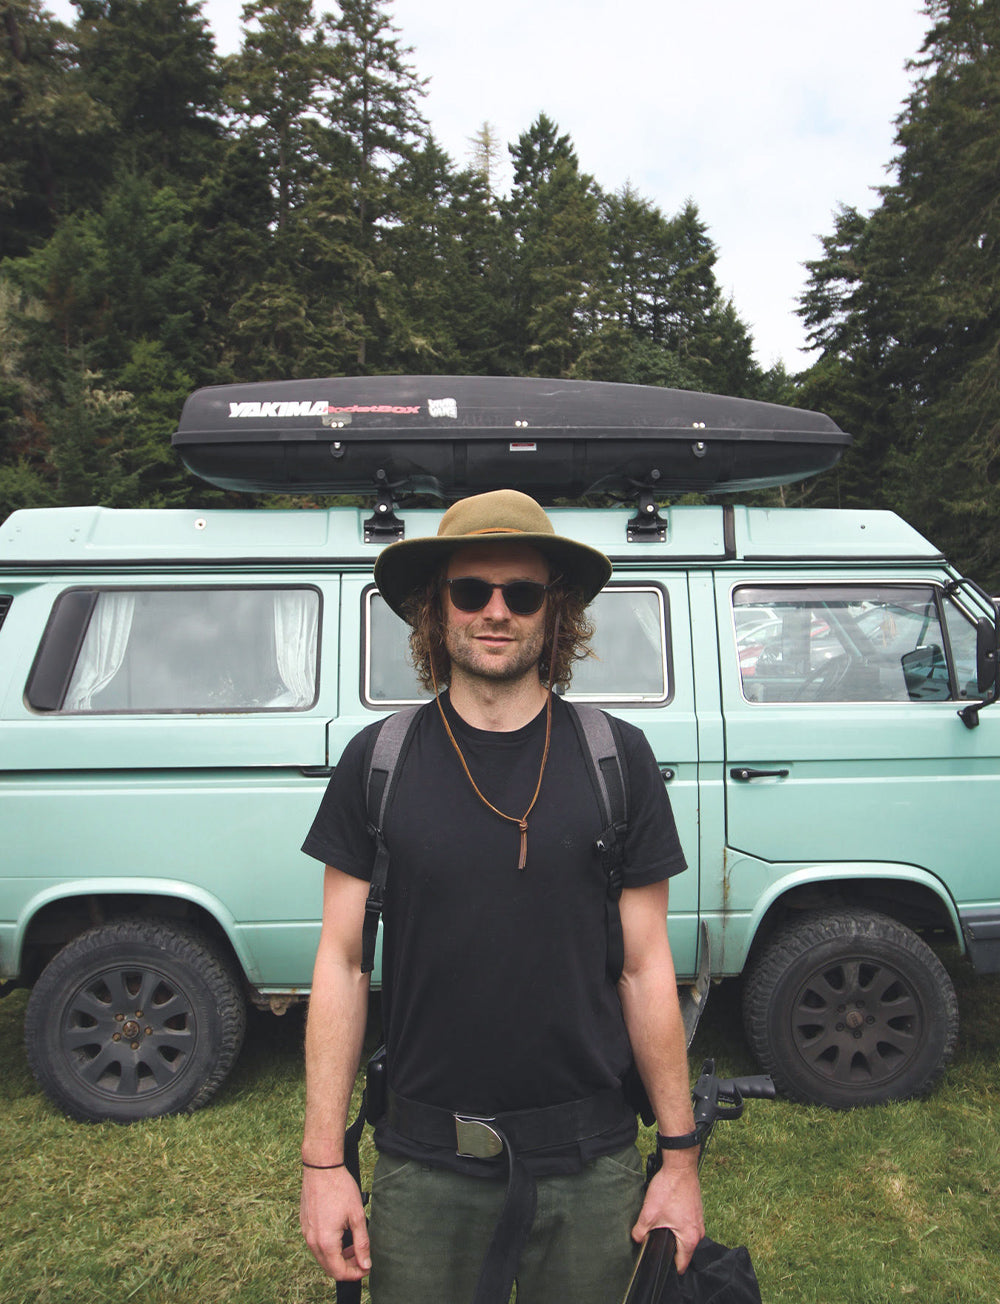 A portrait of Mackenzie Duncan, standing infront of his classic campervan